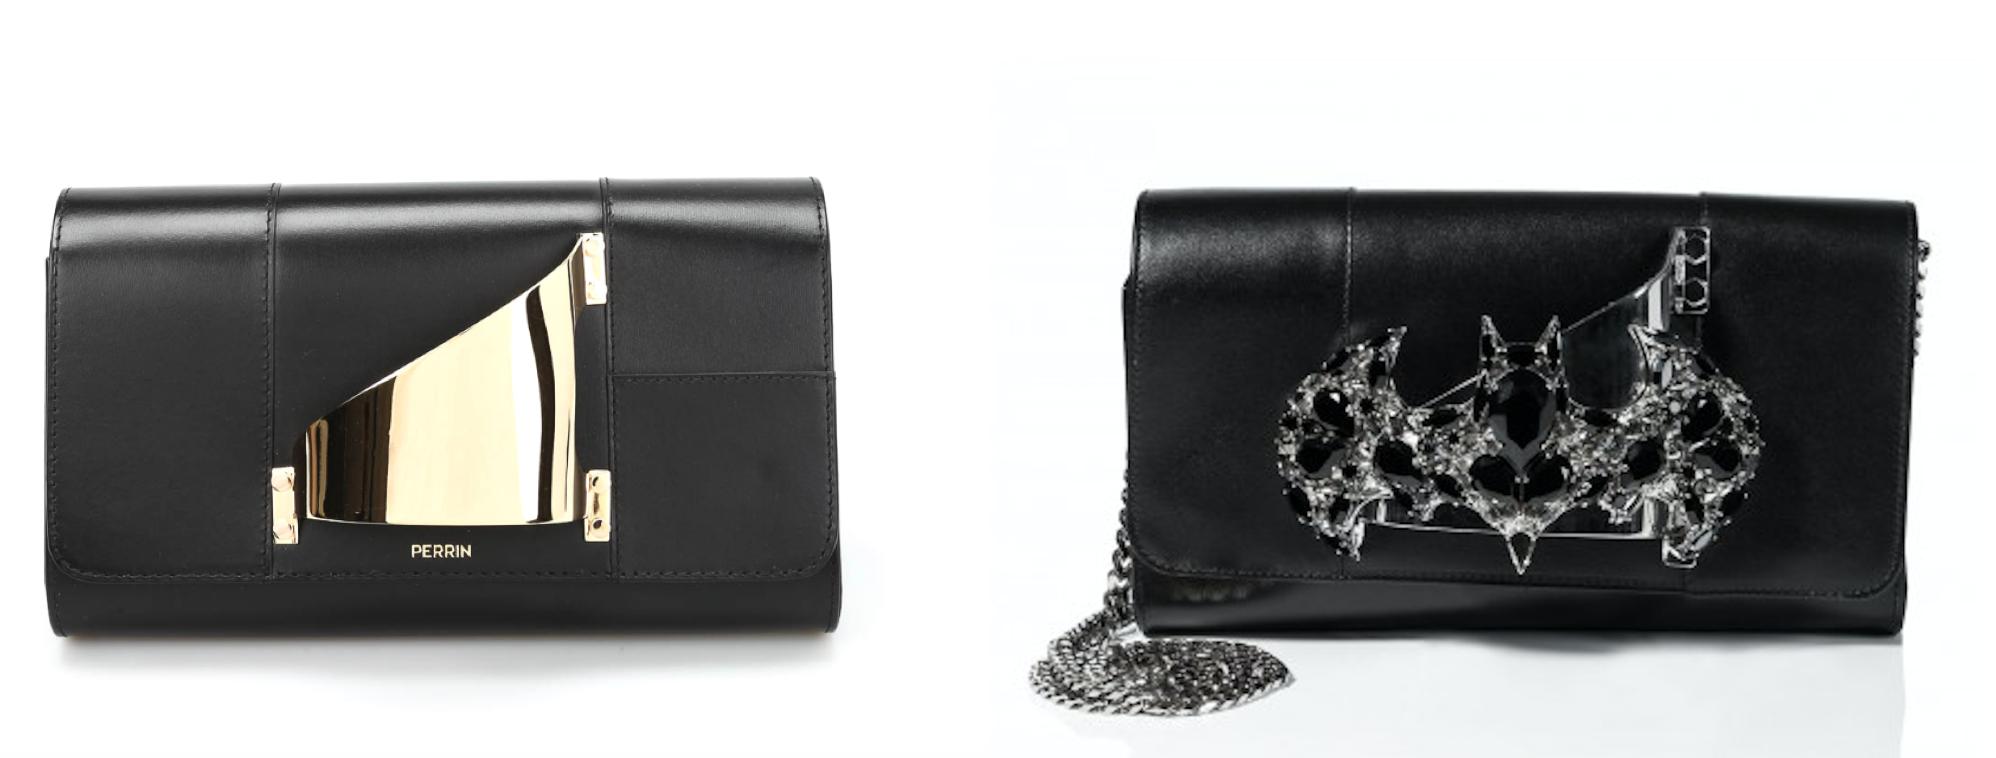 Perrin's Eiffel clutch (left) & Plein's Kindness clutch (right)